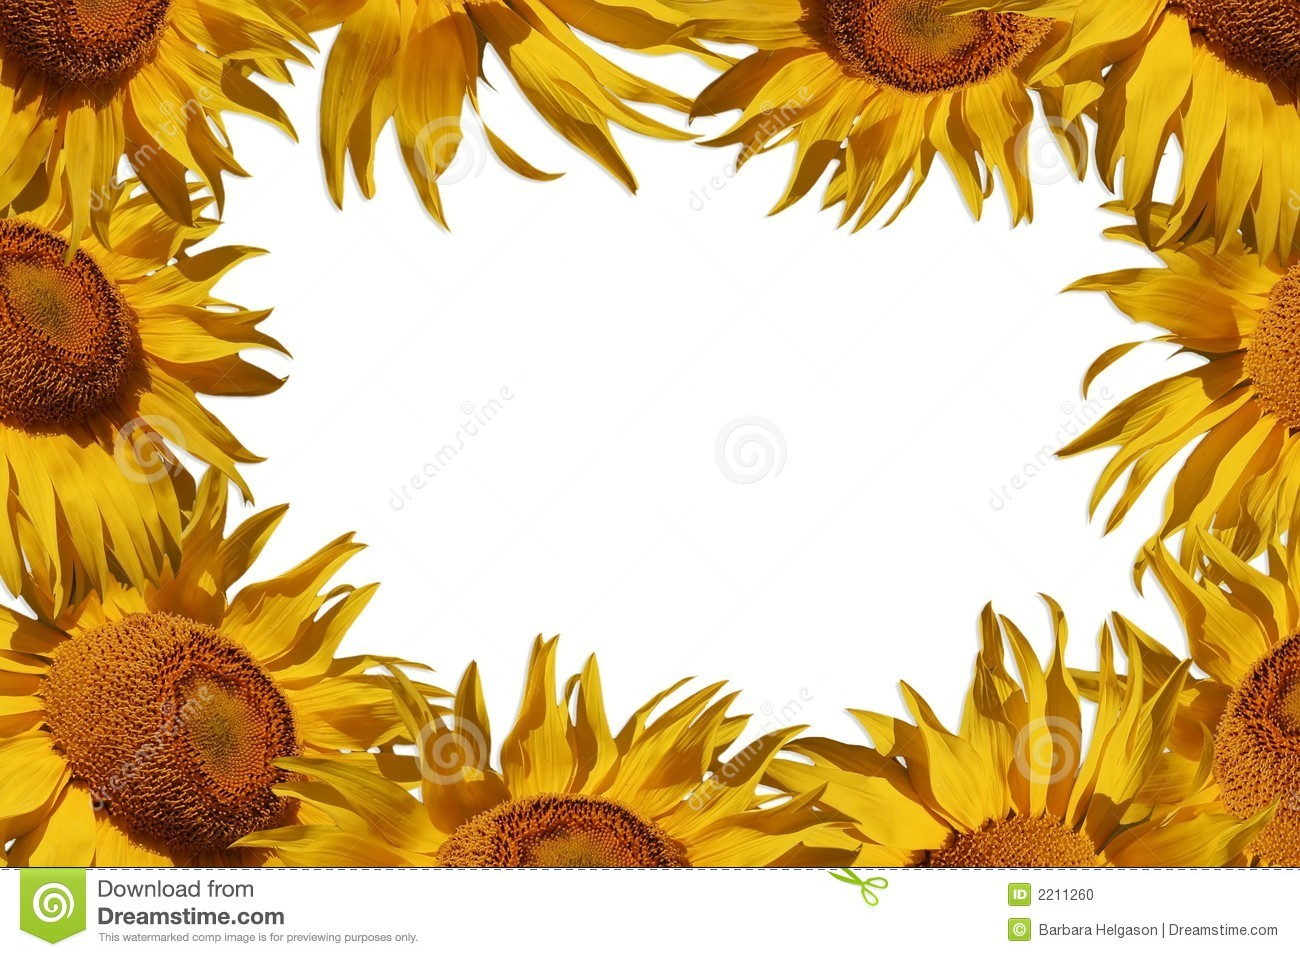 clip art borders sunflowers - photo #35